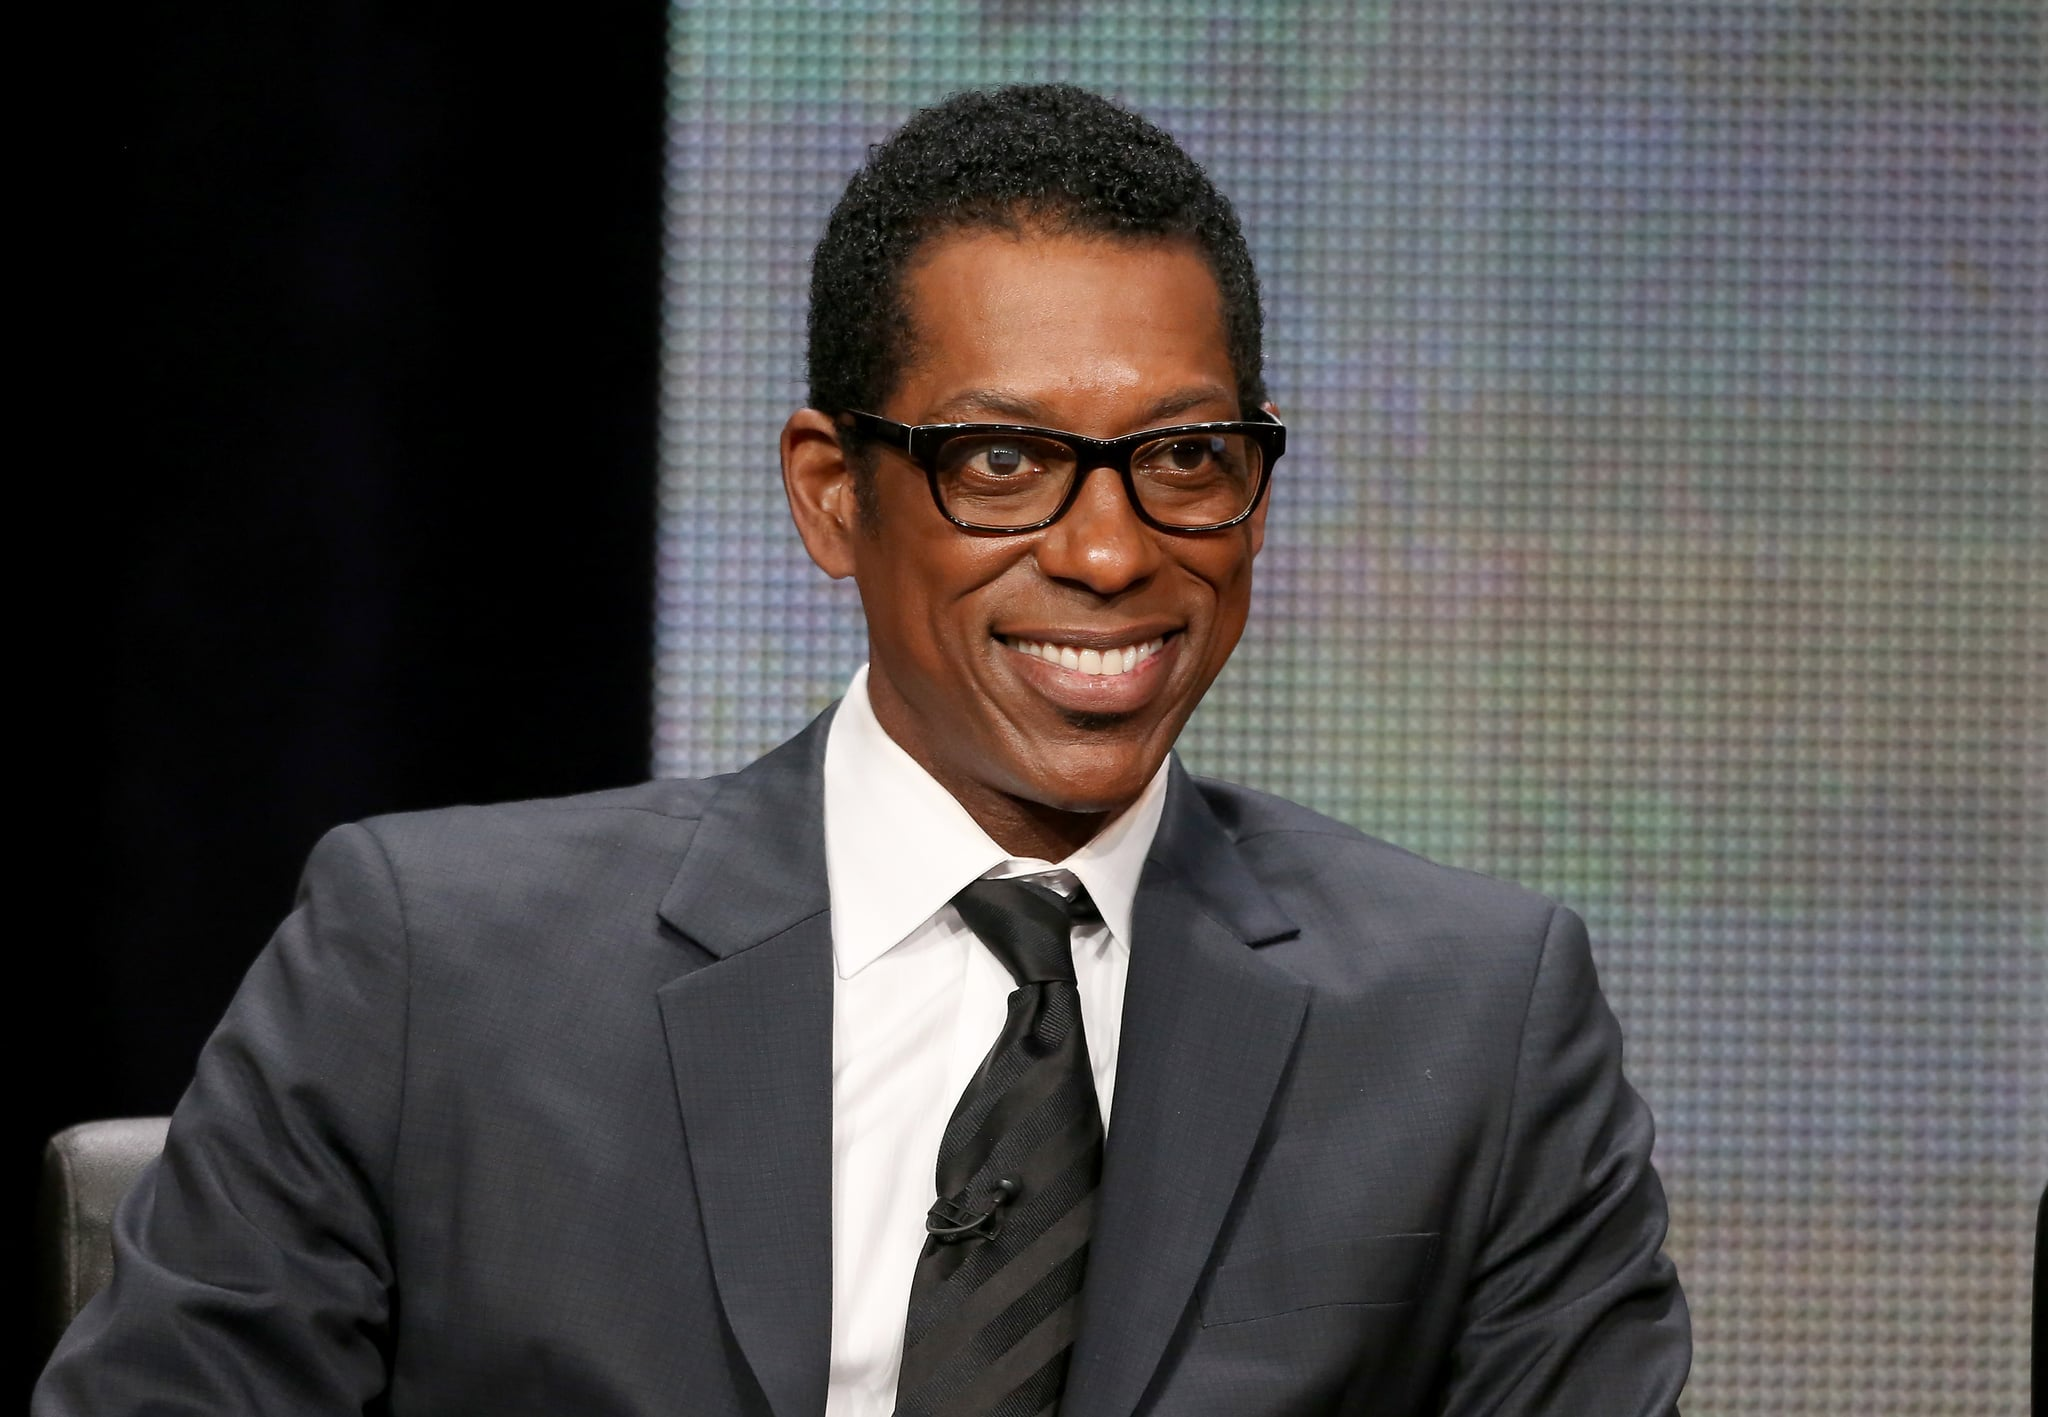 Orlando Jones was at the Summer TCA Press Tour to promote his new show, Sleepy Hollow.